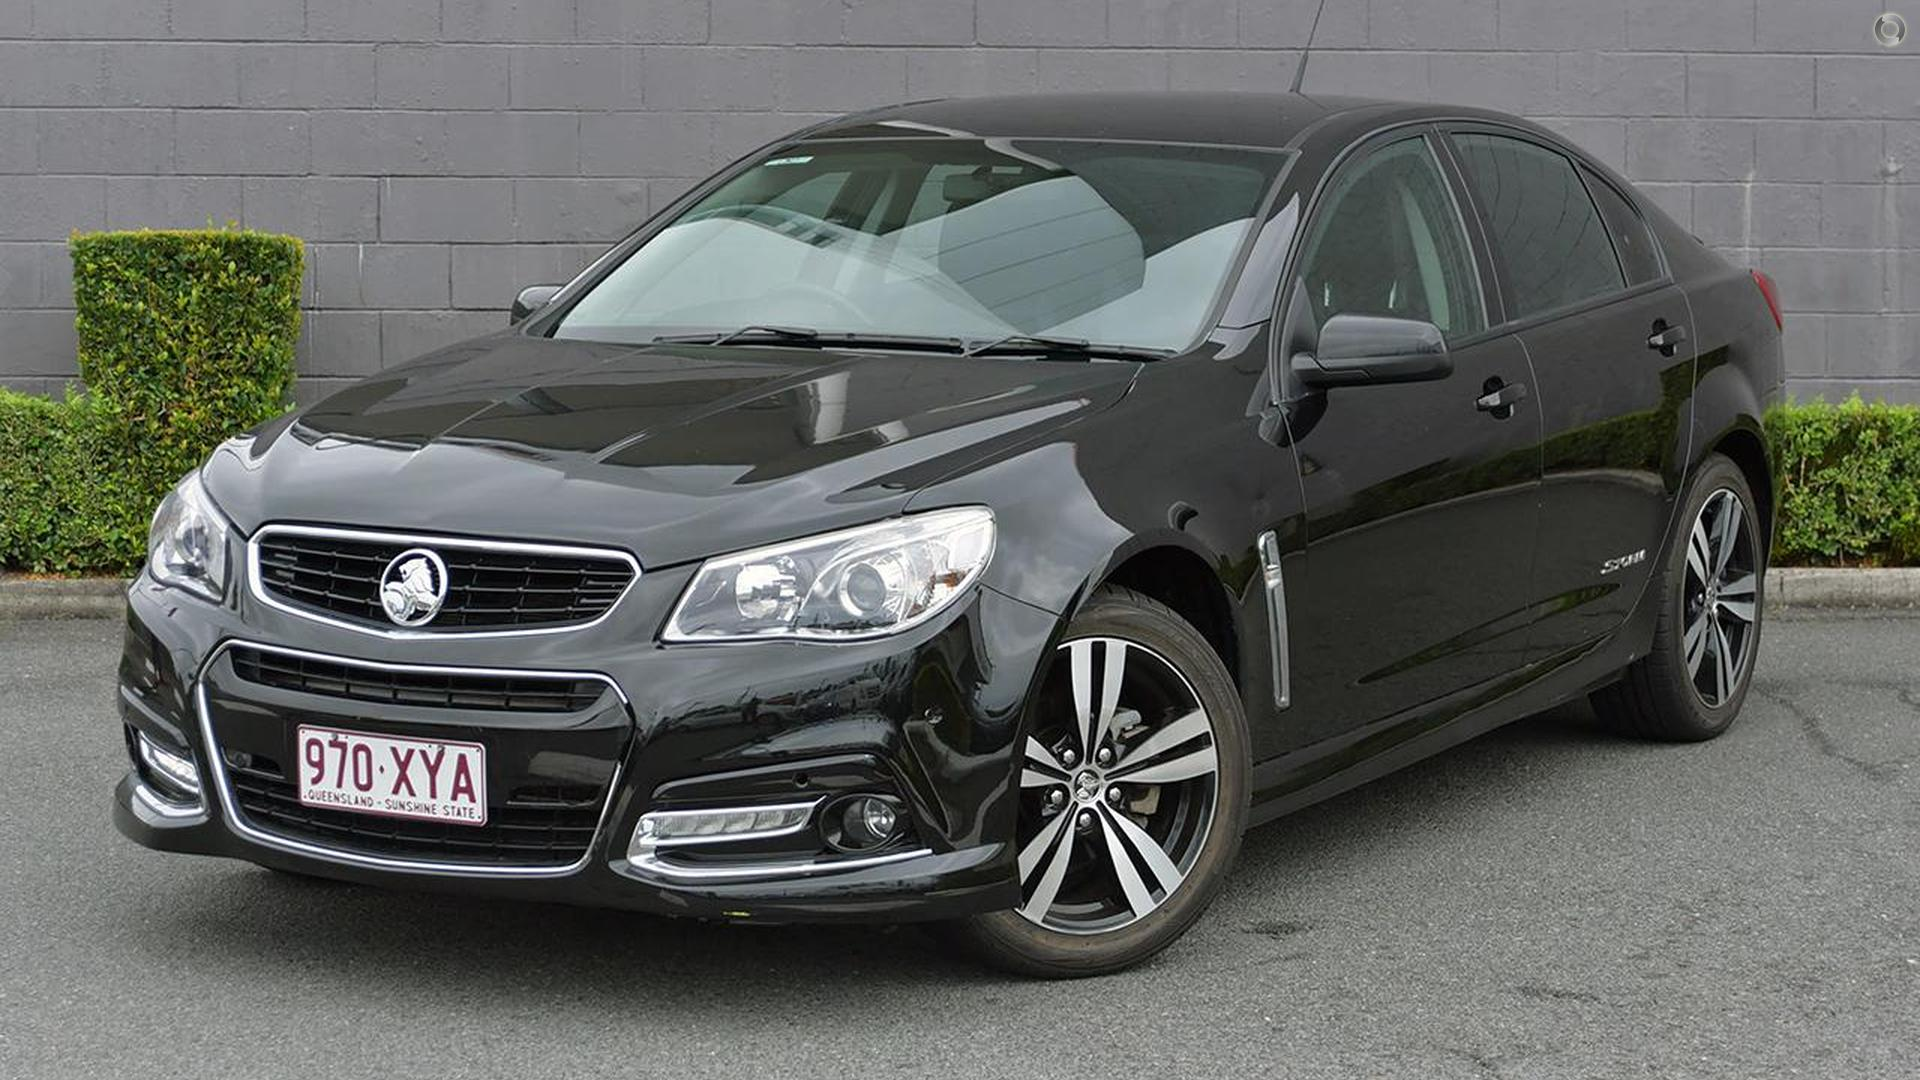 2015 Holden Commodore SV6 Storm VF